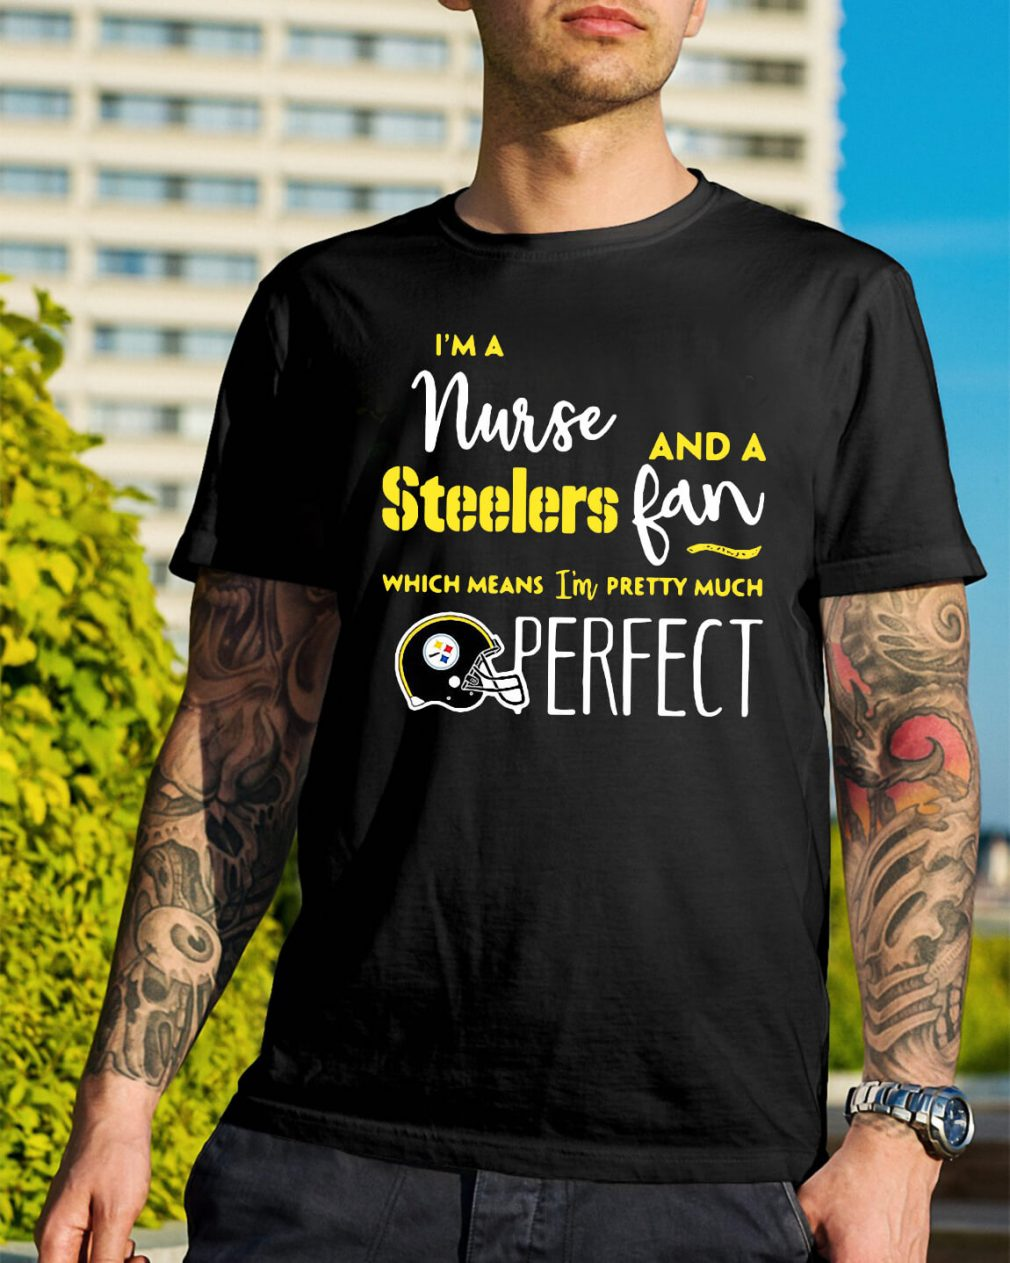 I'm a nurse and a Steelers fan which means I'm pretty much perfect shirt